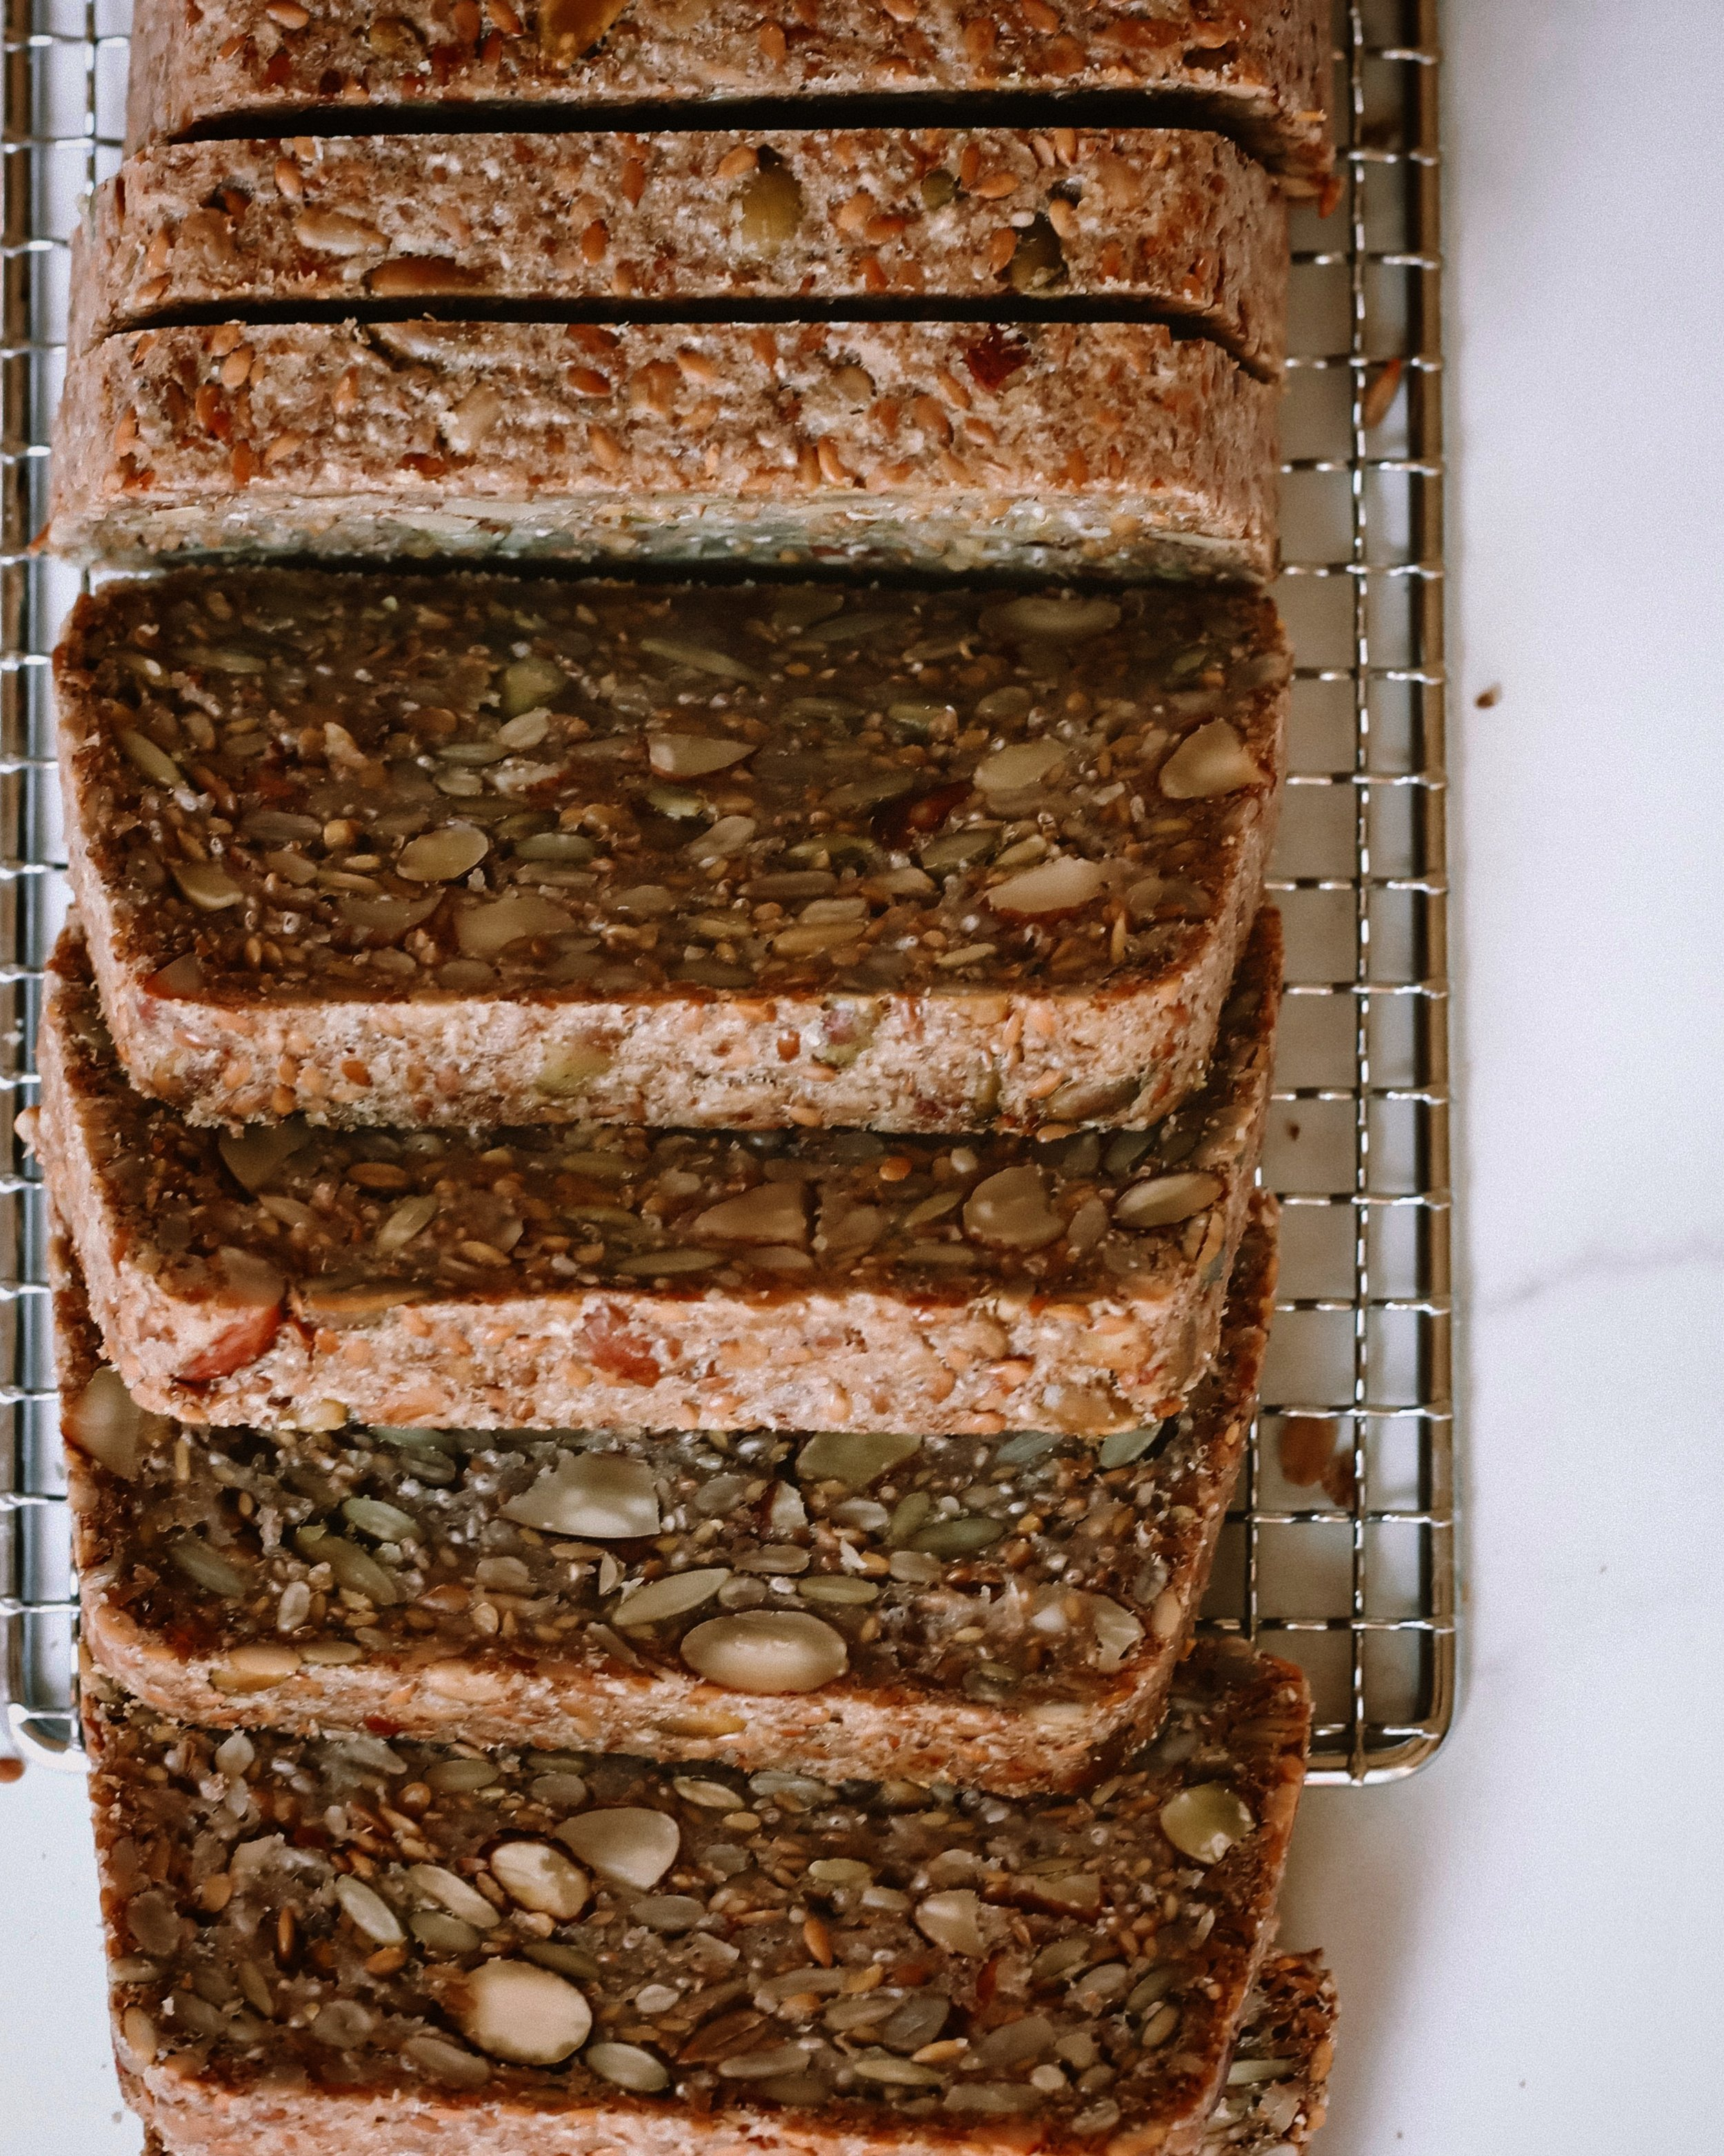 GRAIN FREE SEED + NUT BREAD - INGREDIENTS1 cup cassava flour 1 cup pumpkin seeds1/3 cup raw almonds2/3 cup flax seeds (the whole seed)1/2 cup sunflower seeds3 tsp chia seeds1/4 cup psyllium husks (flakes, not powder)1 tsp sea salt2 tb maple syrup 1 tb apple cider vinegar1/4 cup melted coconut oil or avocado oil1 3/4 cups water